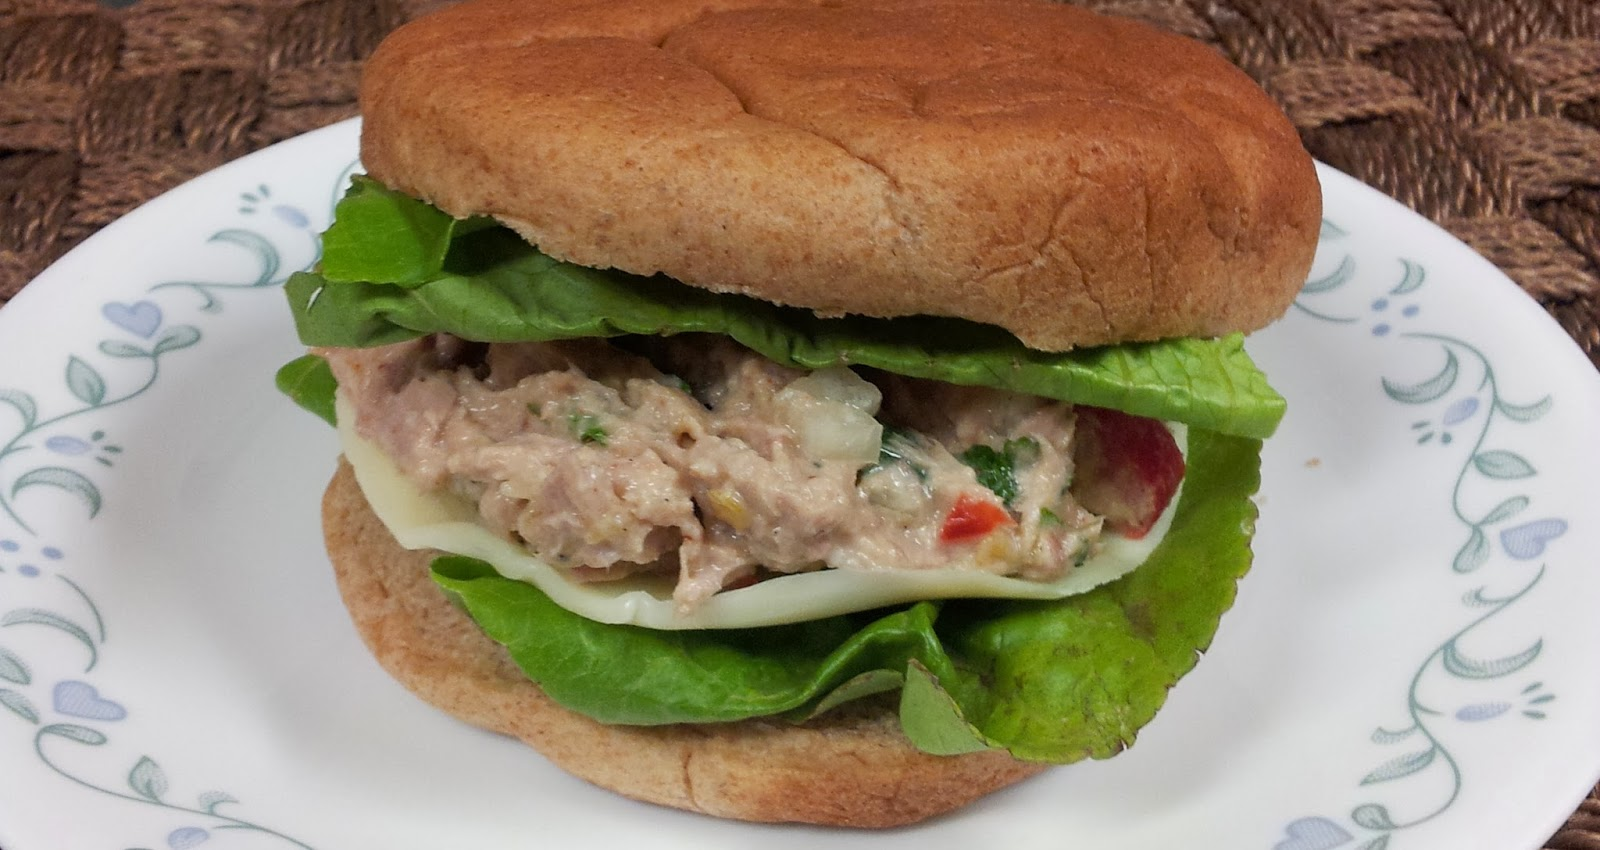 ... Does Dinner... Healthy & Low Calorie: Southwestern Tuna Salad Sandwich